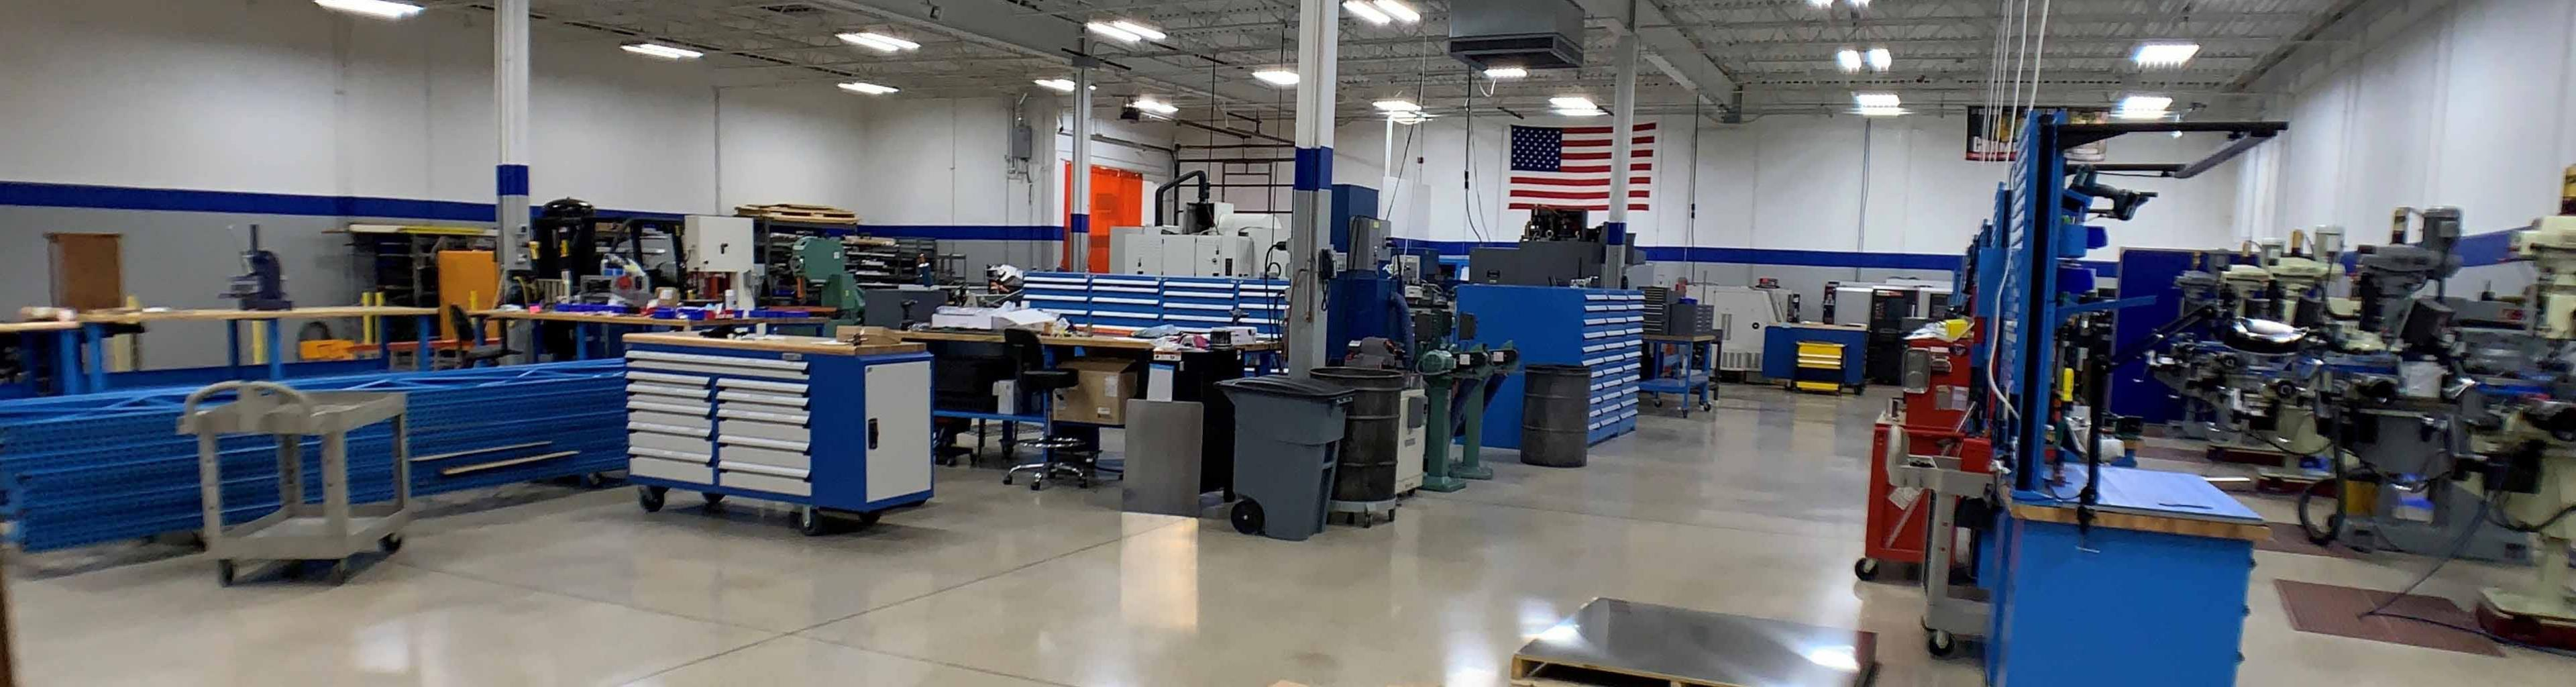 High Tech State of the Art Machine Shop